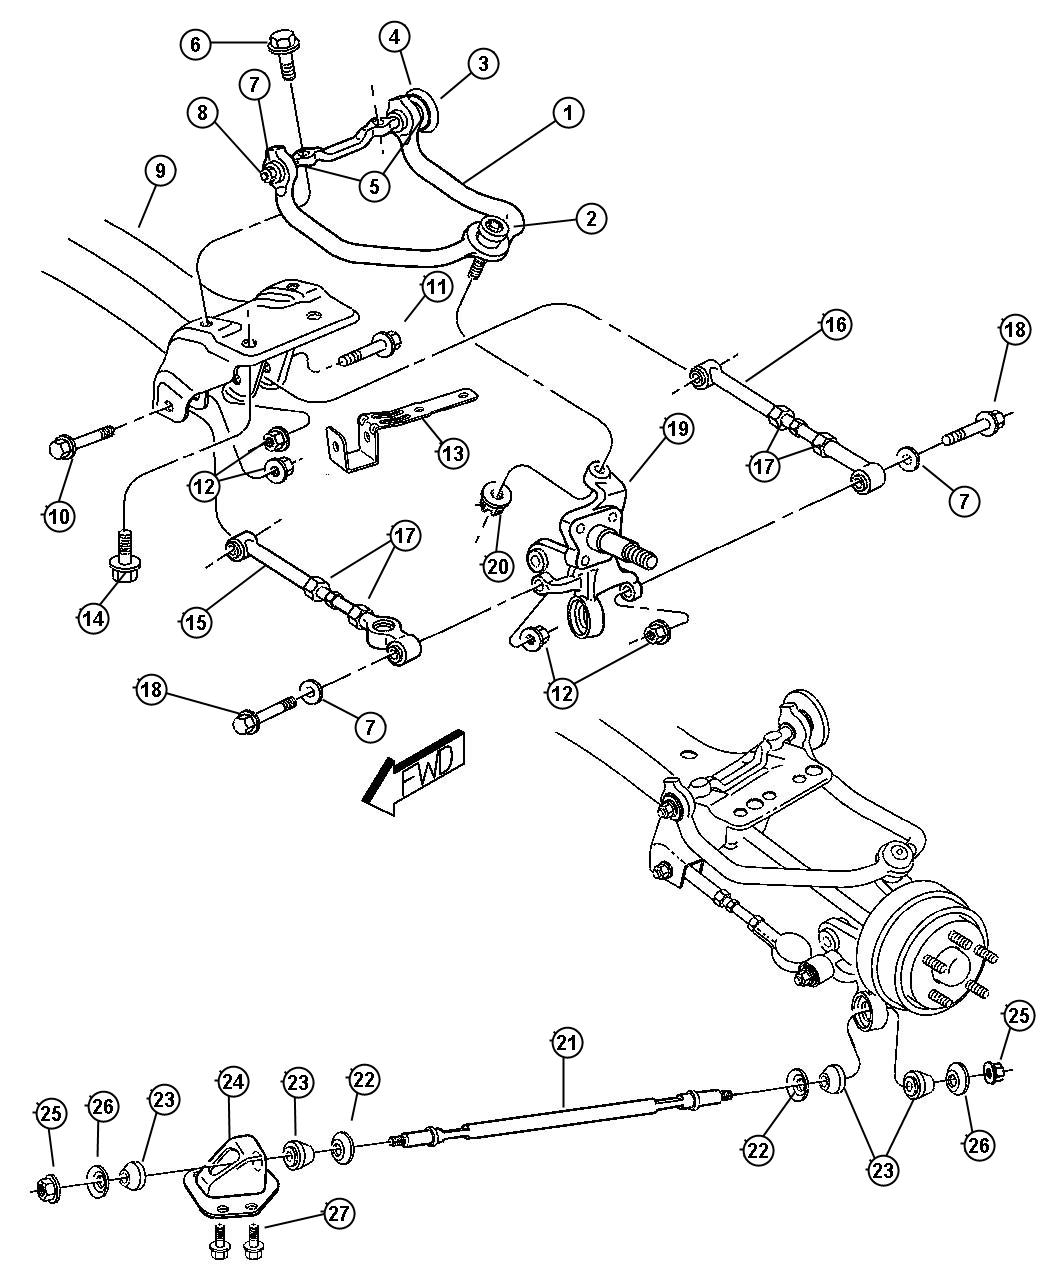 Chrysler Sebring Rear Suspension